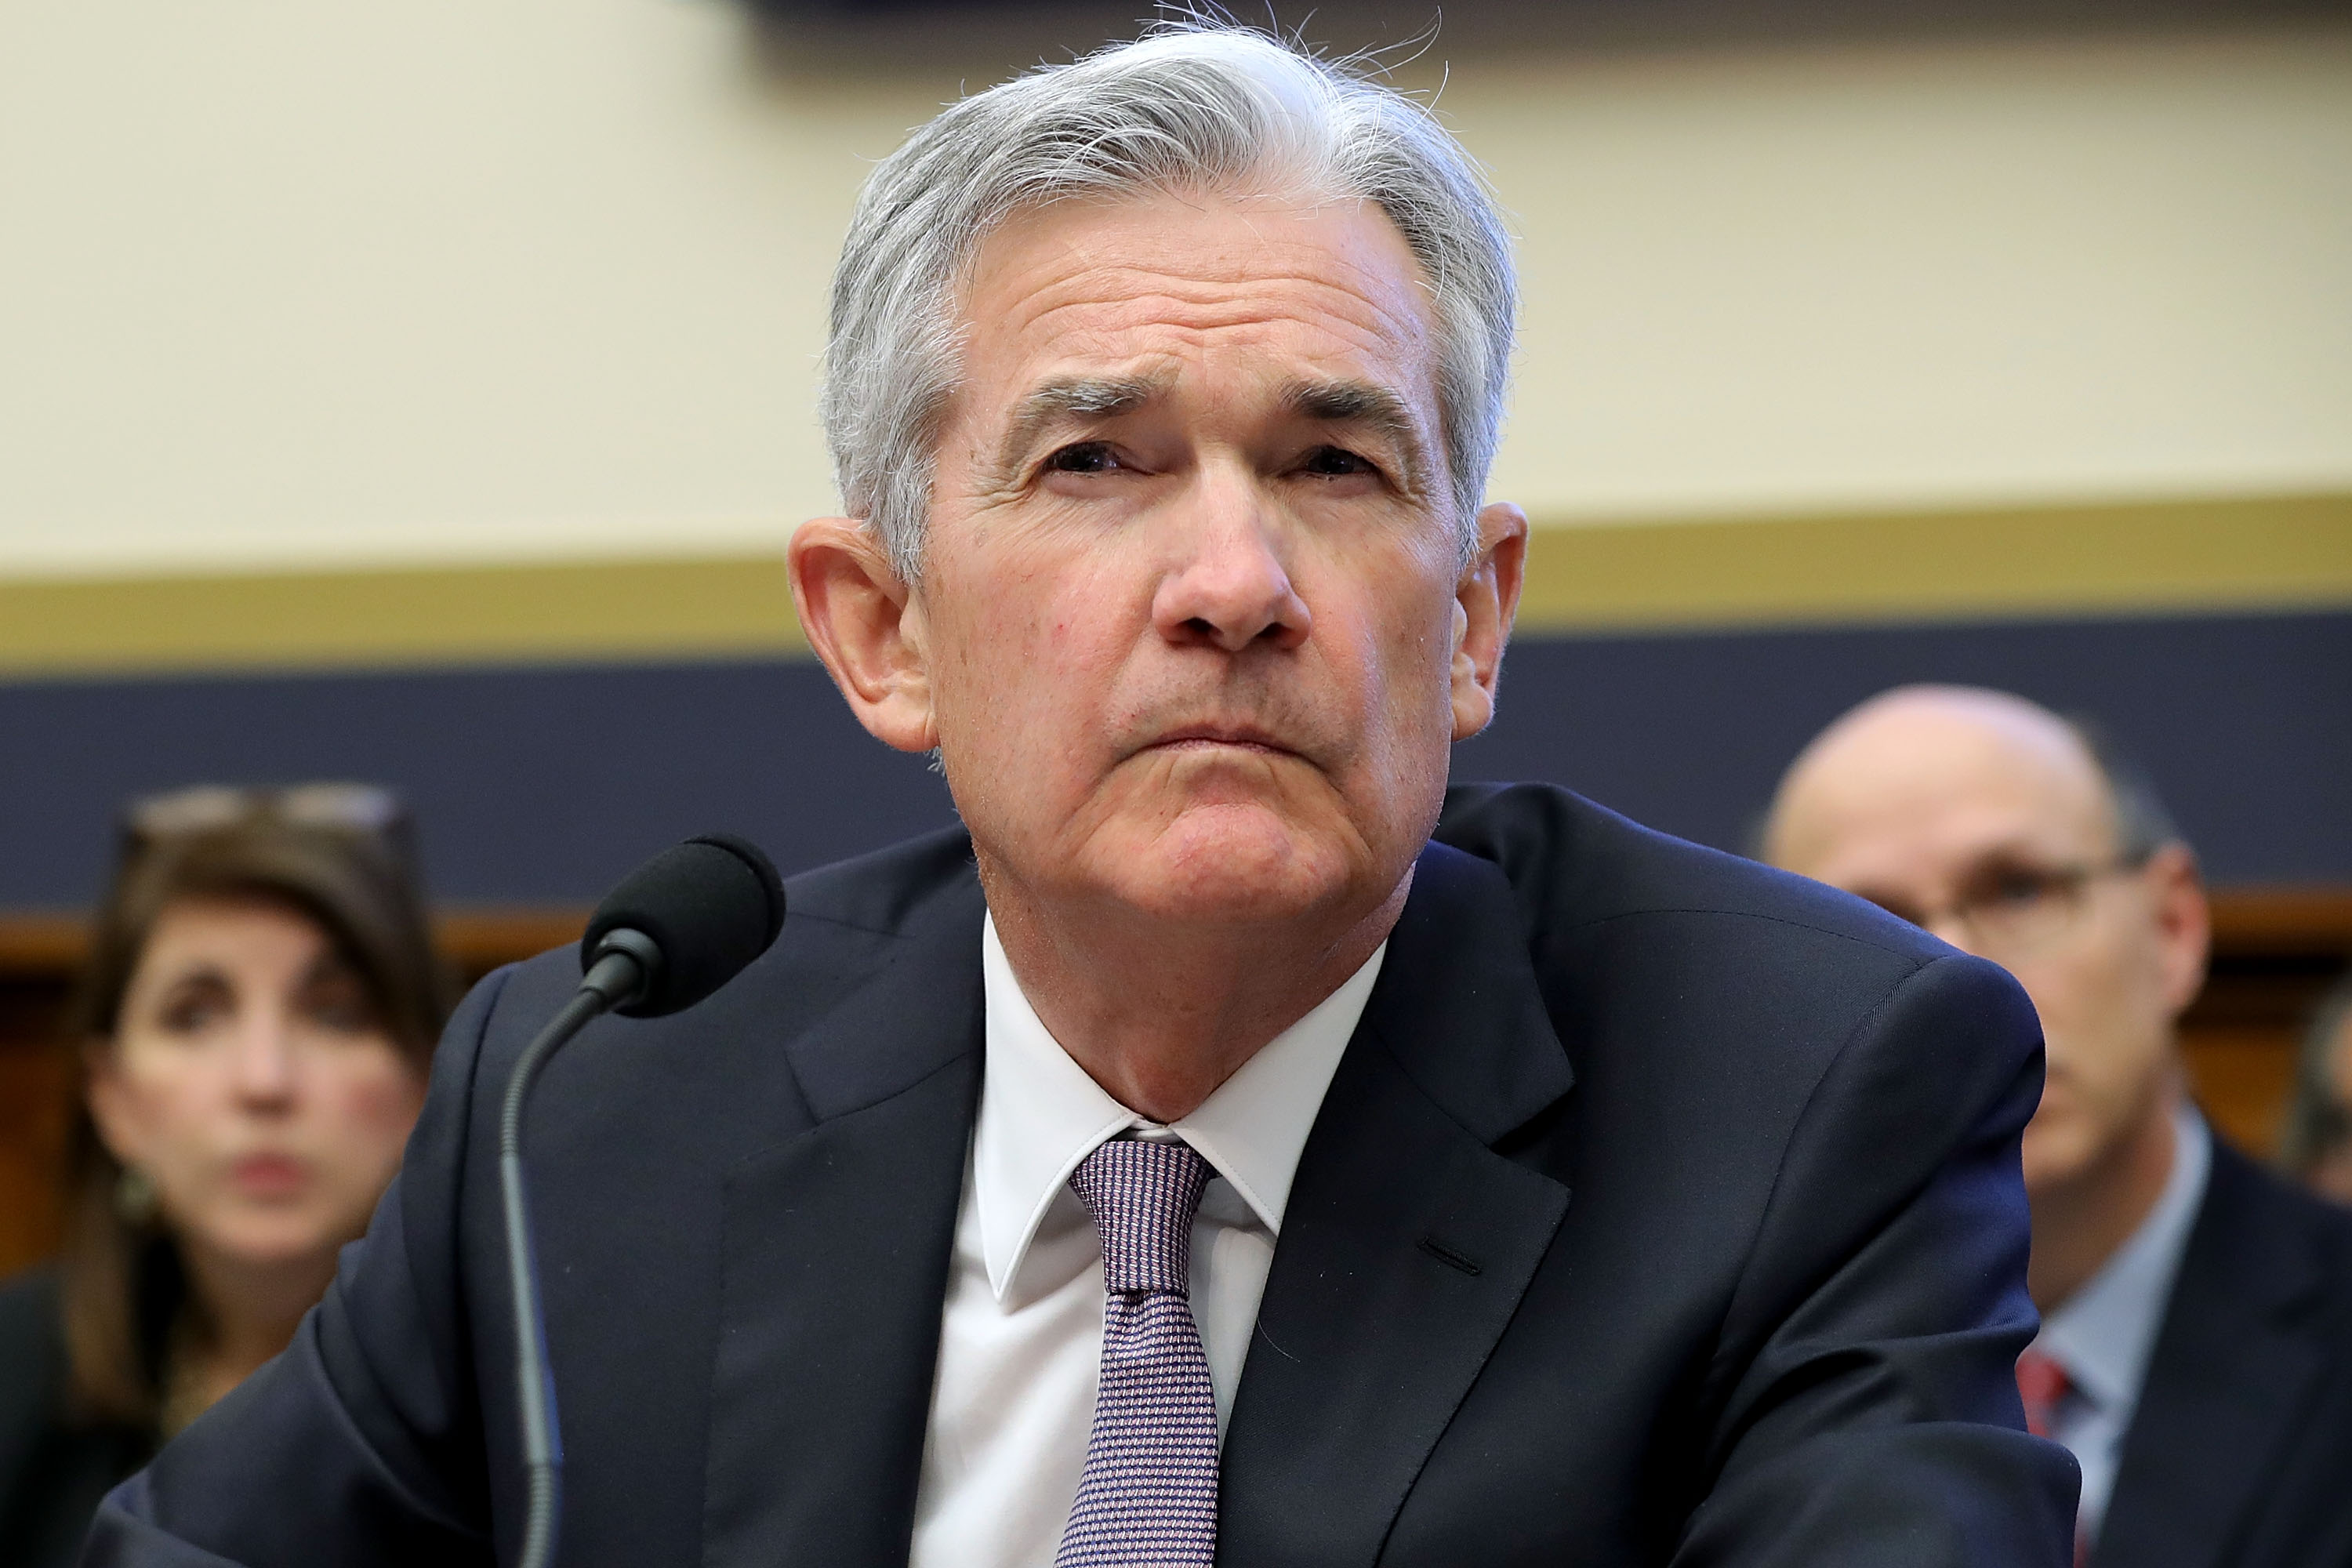 WASHINGTON, DC - FEBRUARY 27:  Federal Reserve Board Chairman Jerome Powell testifies before the House Financial Services Committee  (Photo by Chip Somodevilla/Getty Images)